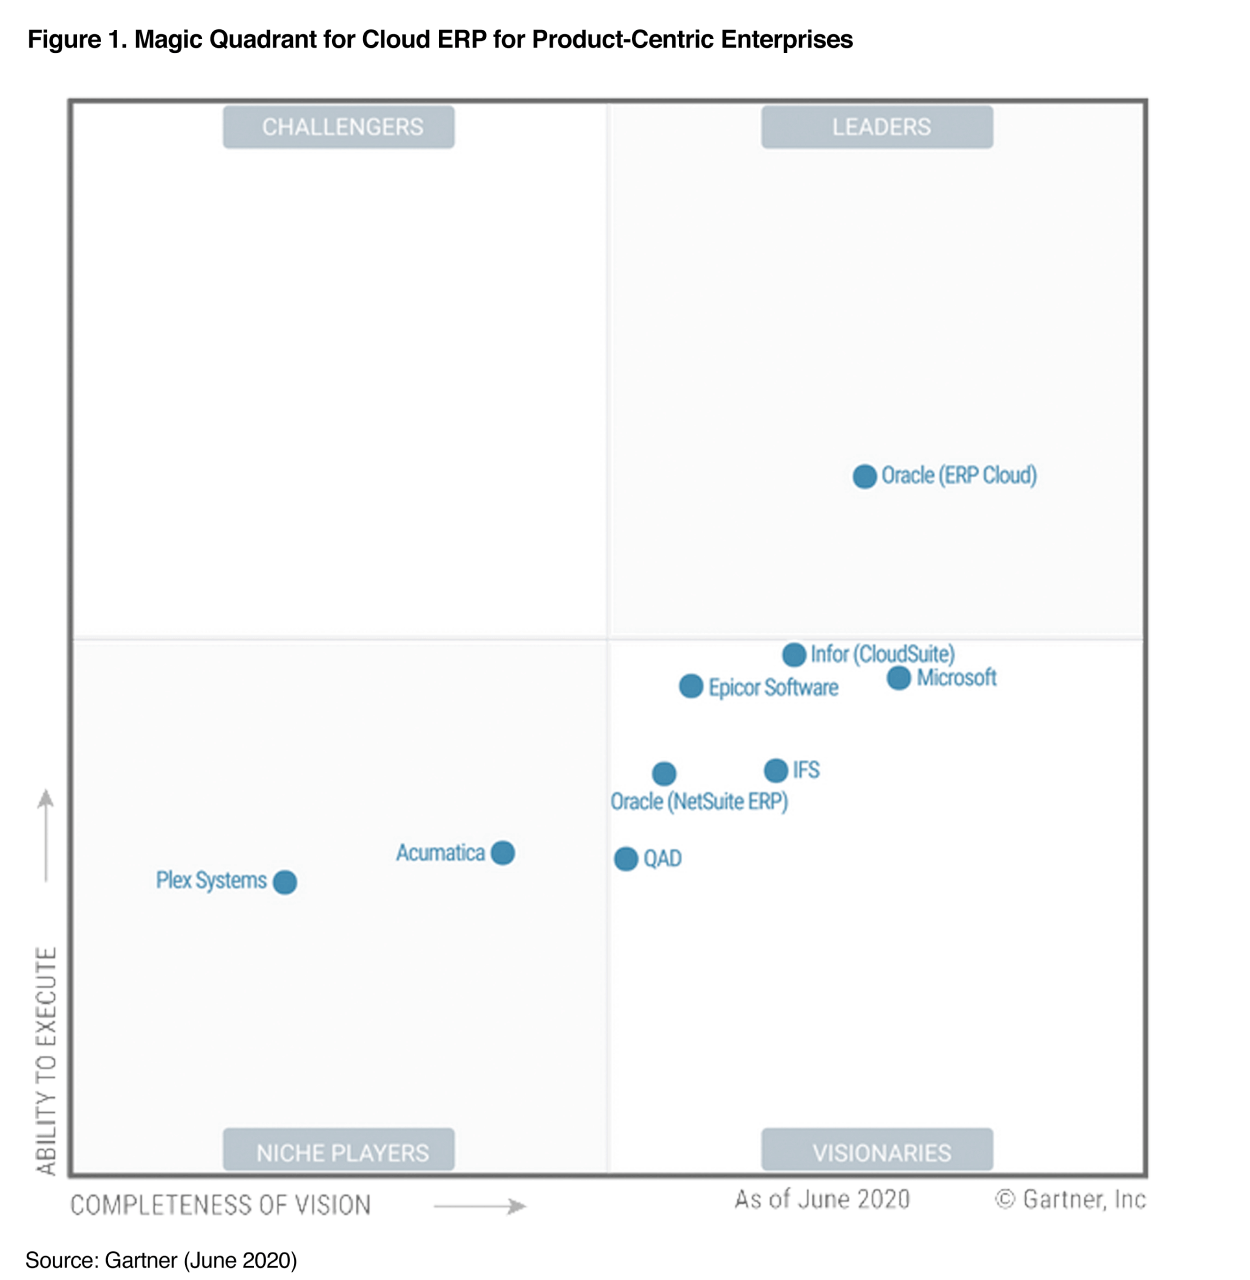 Gartner Magic Quadrant report by Hestermann